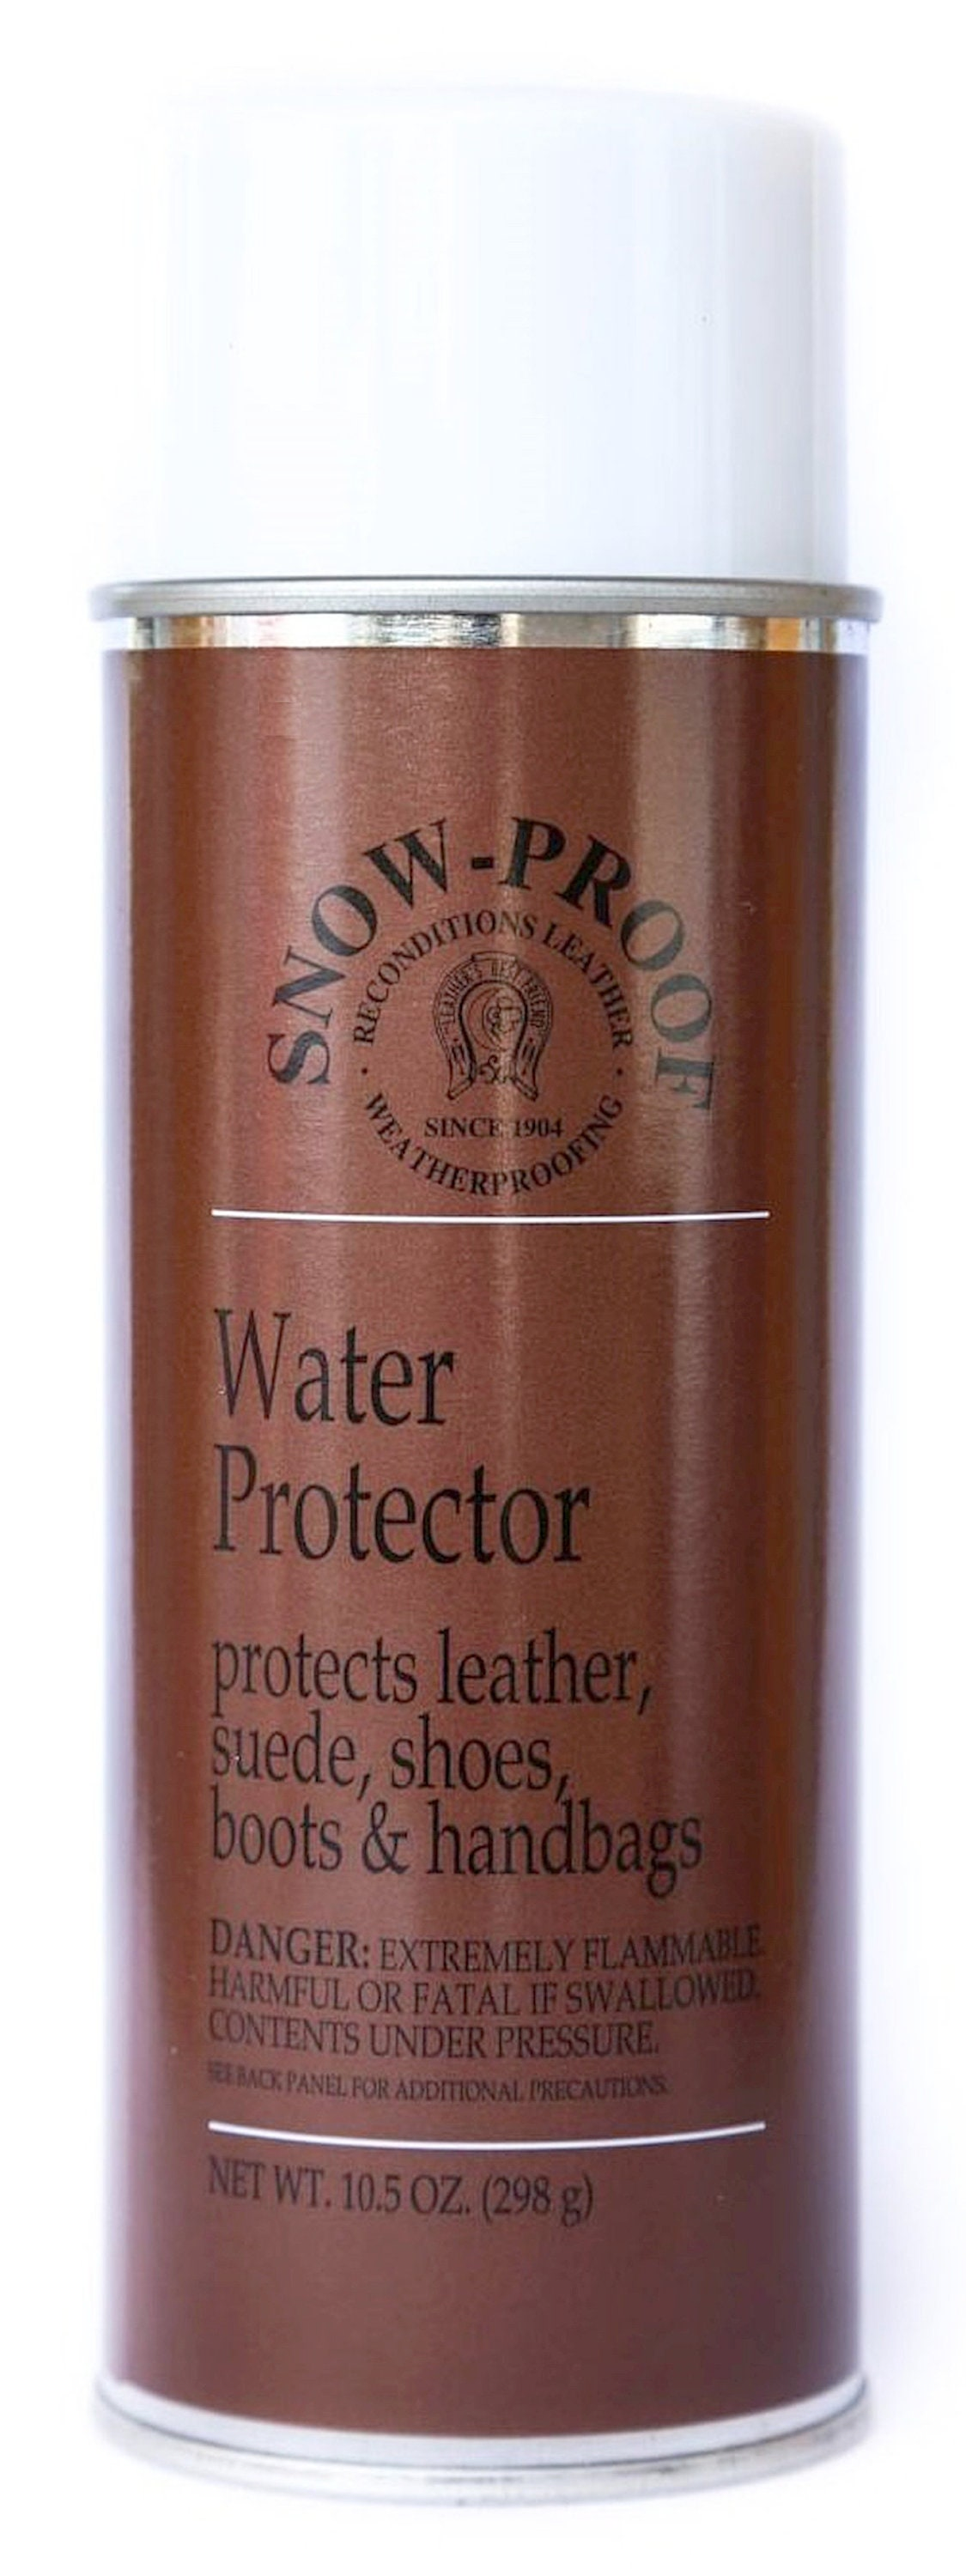 eb731920f67 Water proTecTor REPELLENT proTecT Boots Shoes Leather Suede fabric stain  protection 10 1/2 ounce spraY can SNOW-PROOF